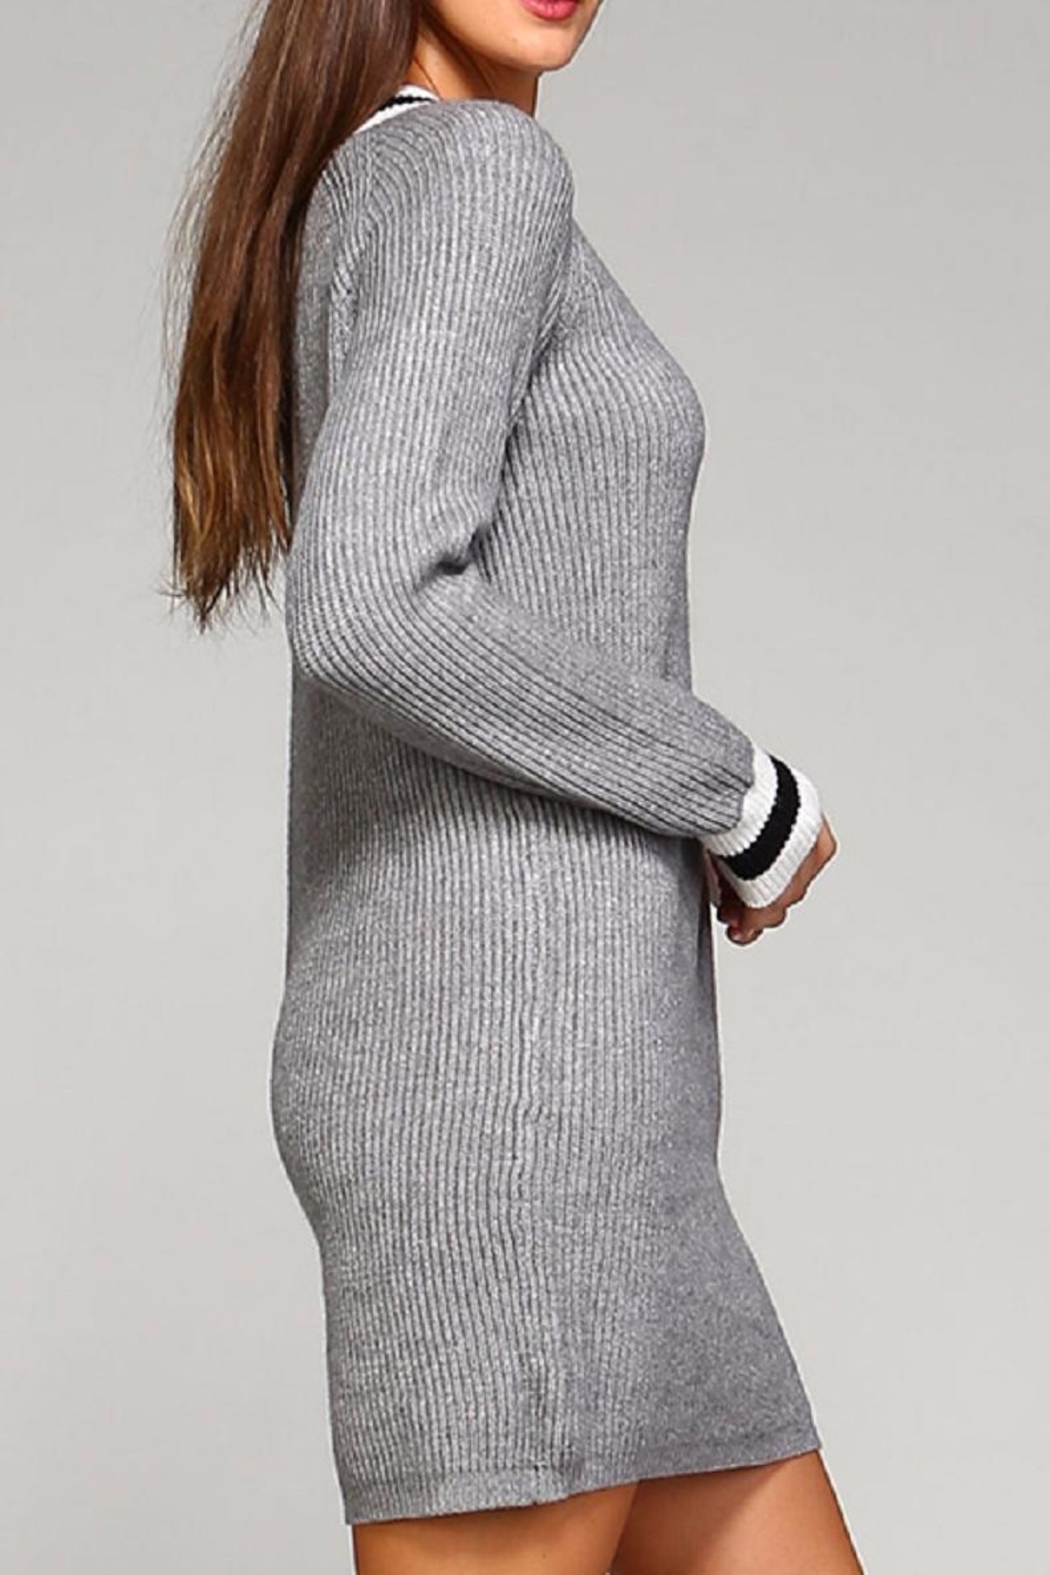 Selfie Couture Grey Varsity Sweater Dress - Side Cropped Image